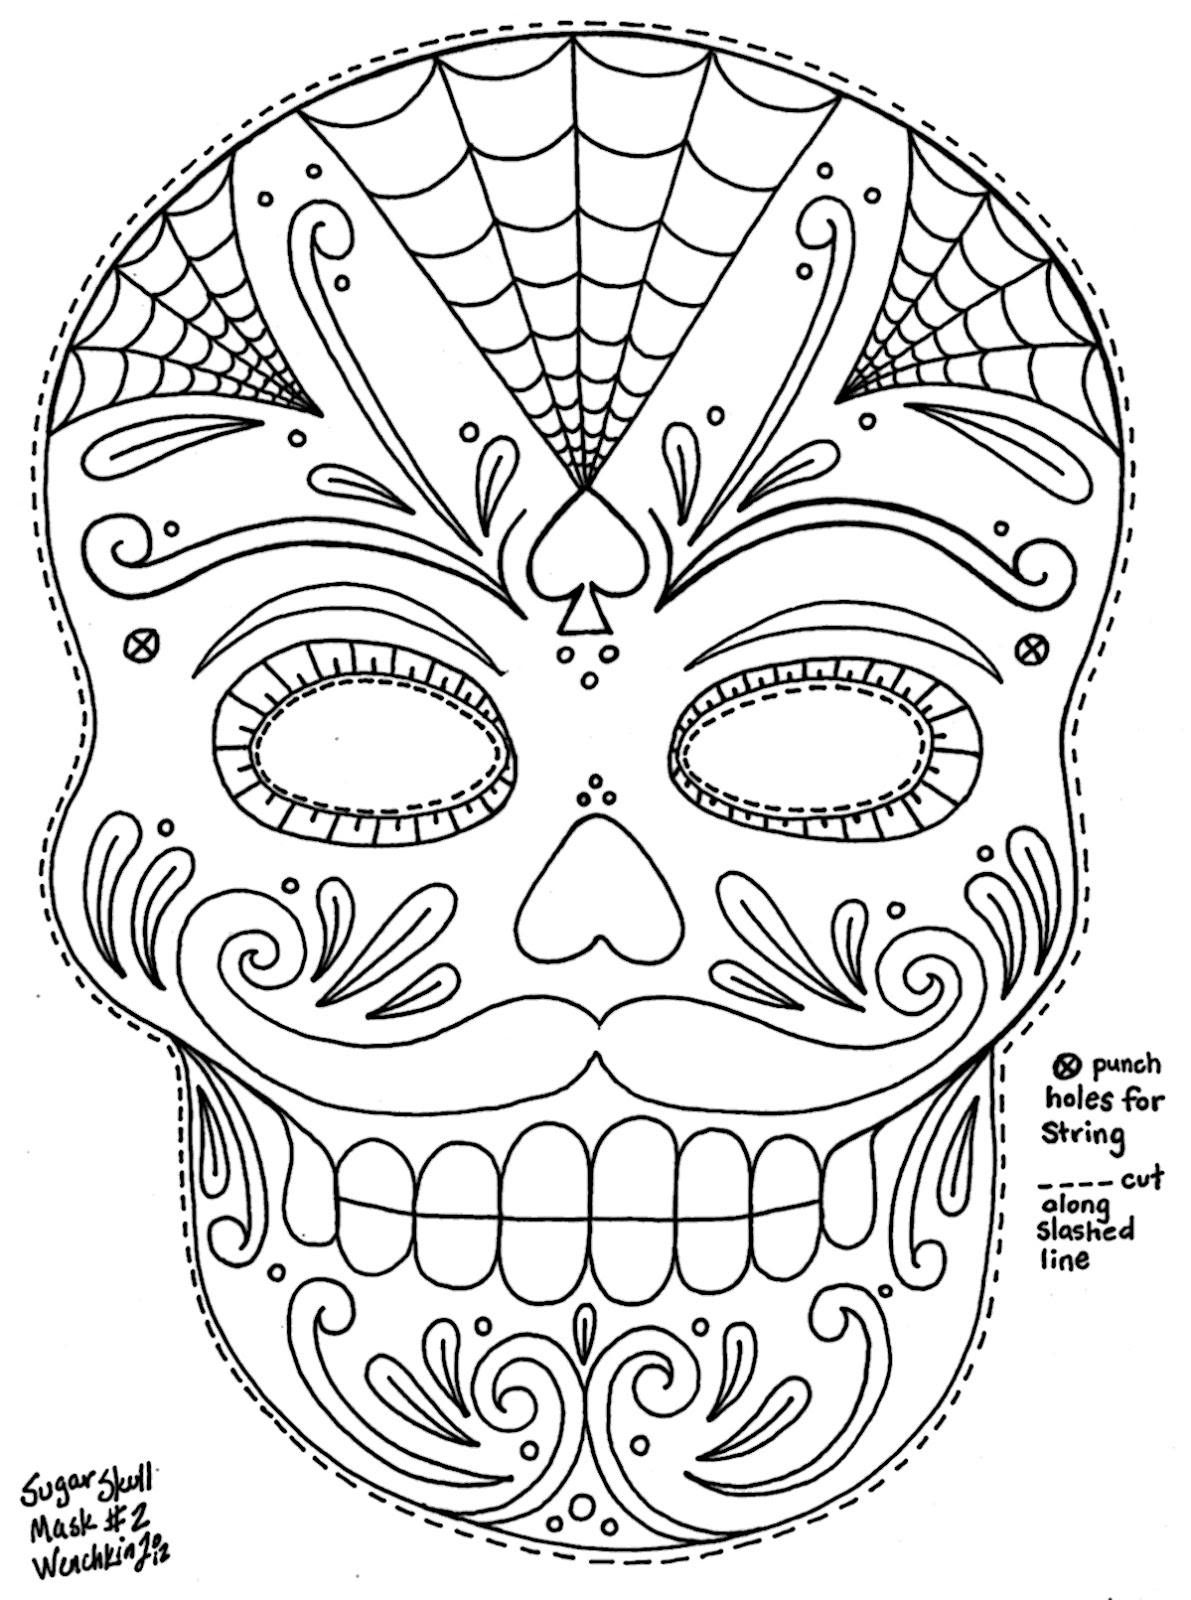 mexico coloring sheet mexican culture drawing at getdrawings free download mexico sheet coloring